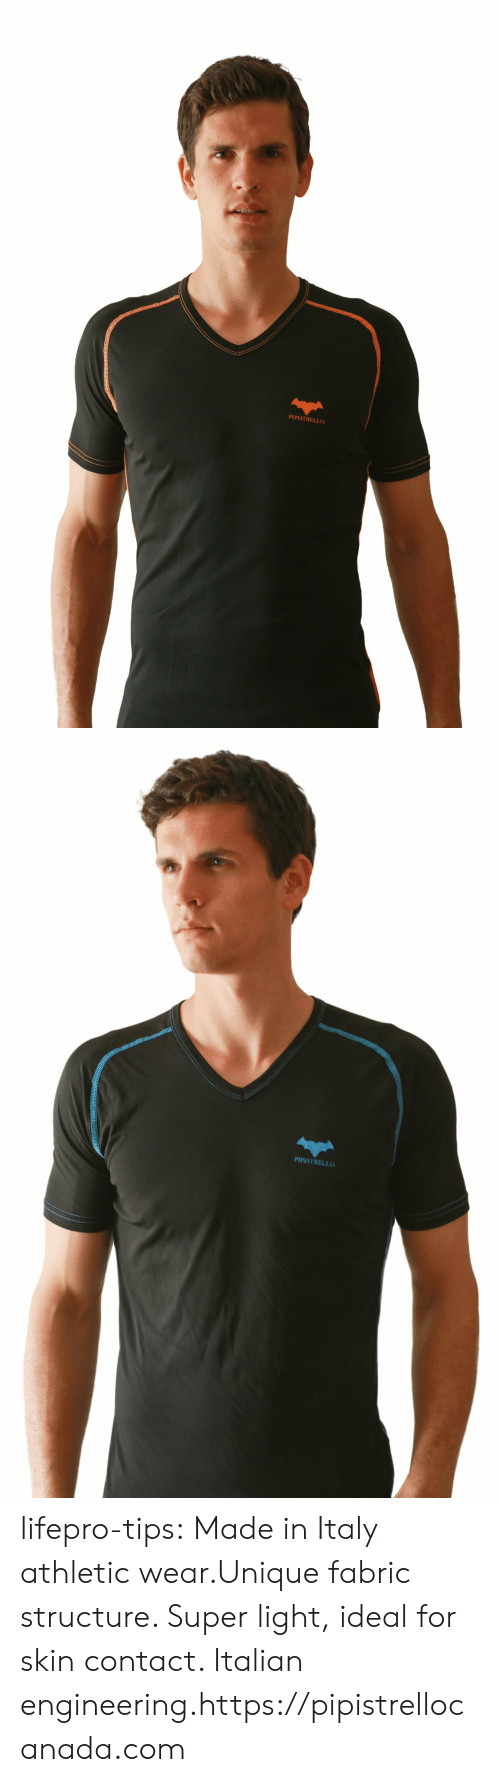 Tumblr, Blog, and Http: PIPISTRELLO   PIPISTRELLO lifepro-tips: Made in Italy athletic wear.Unique fabric structure. Super light, ideal for skin contact. Italian engineering.https://pipistrellocanada.com